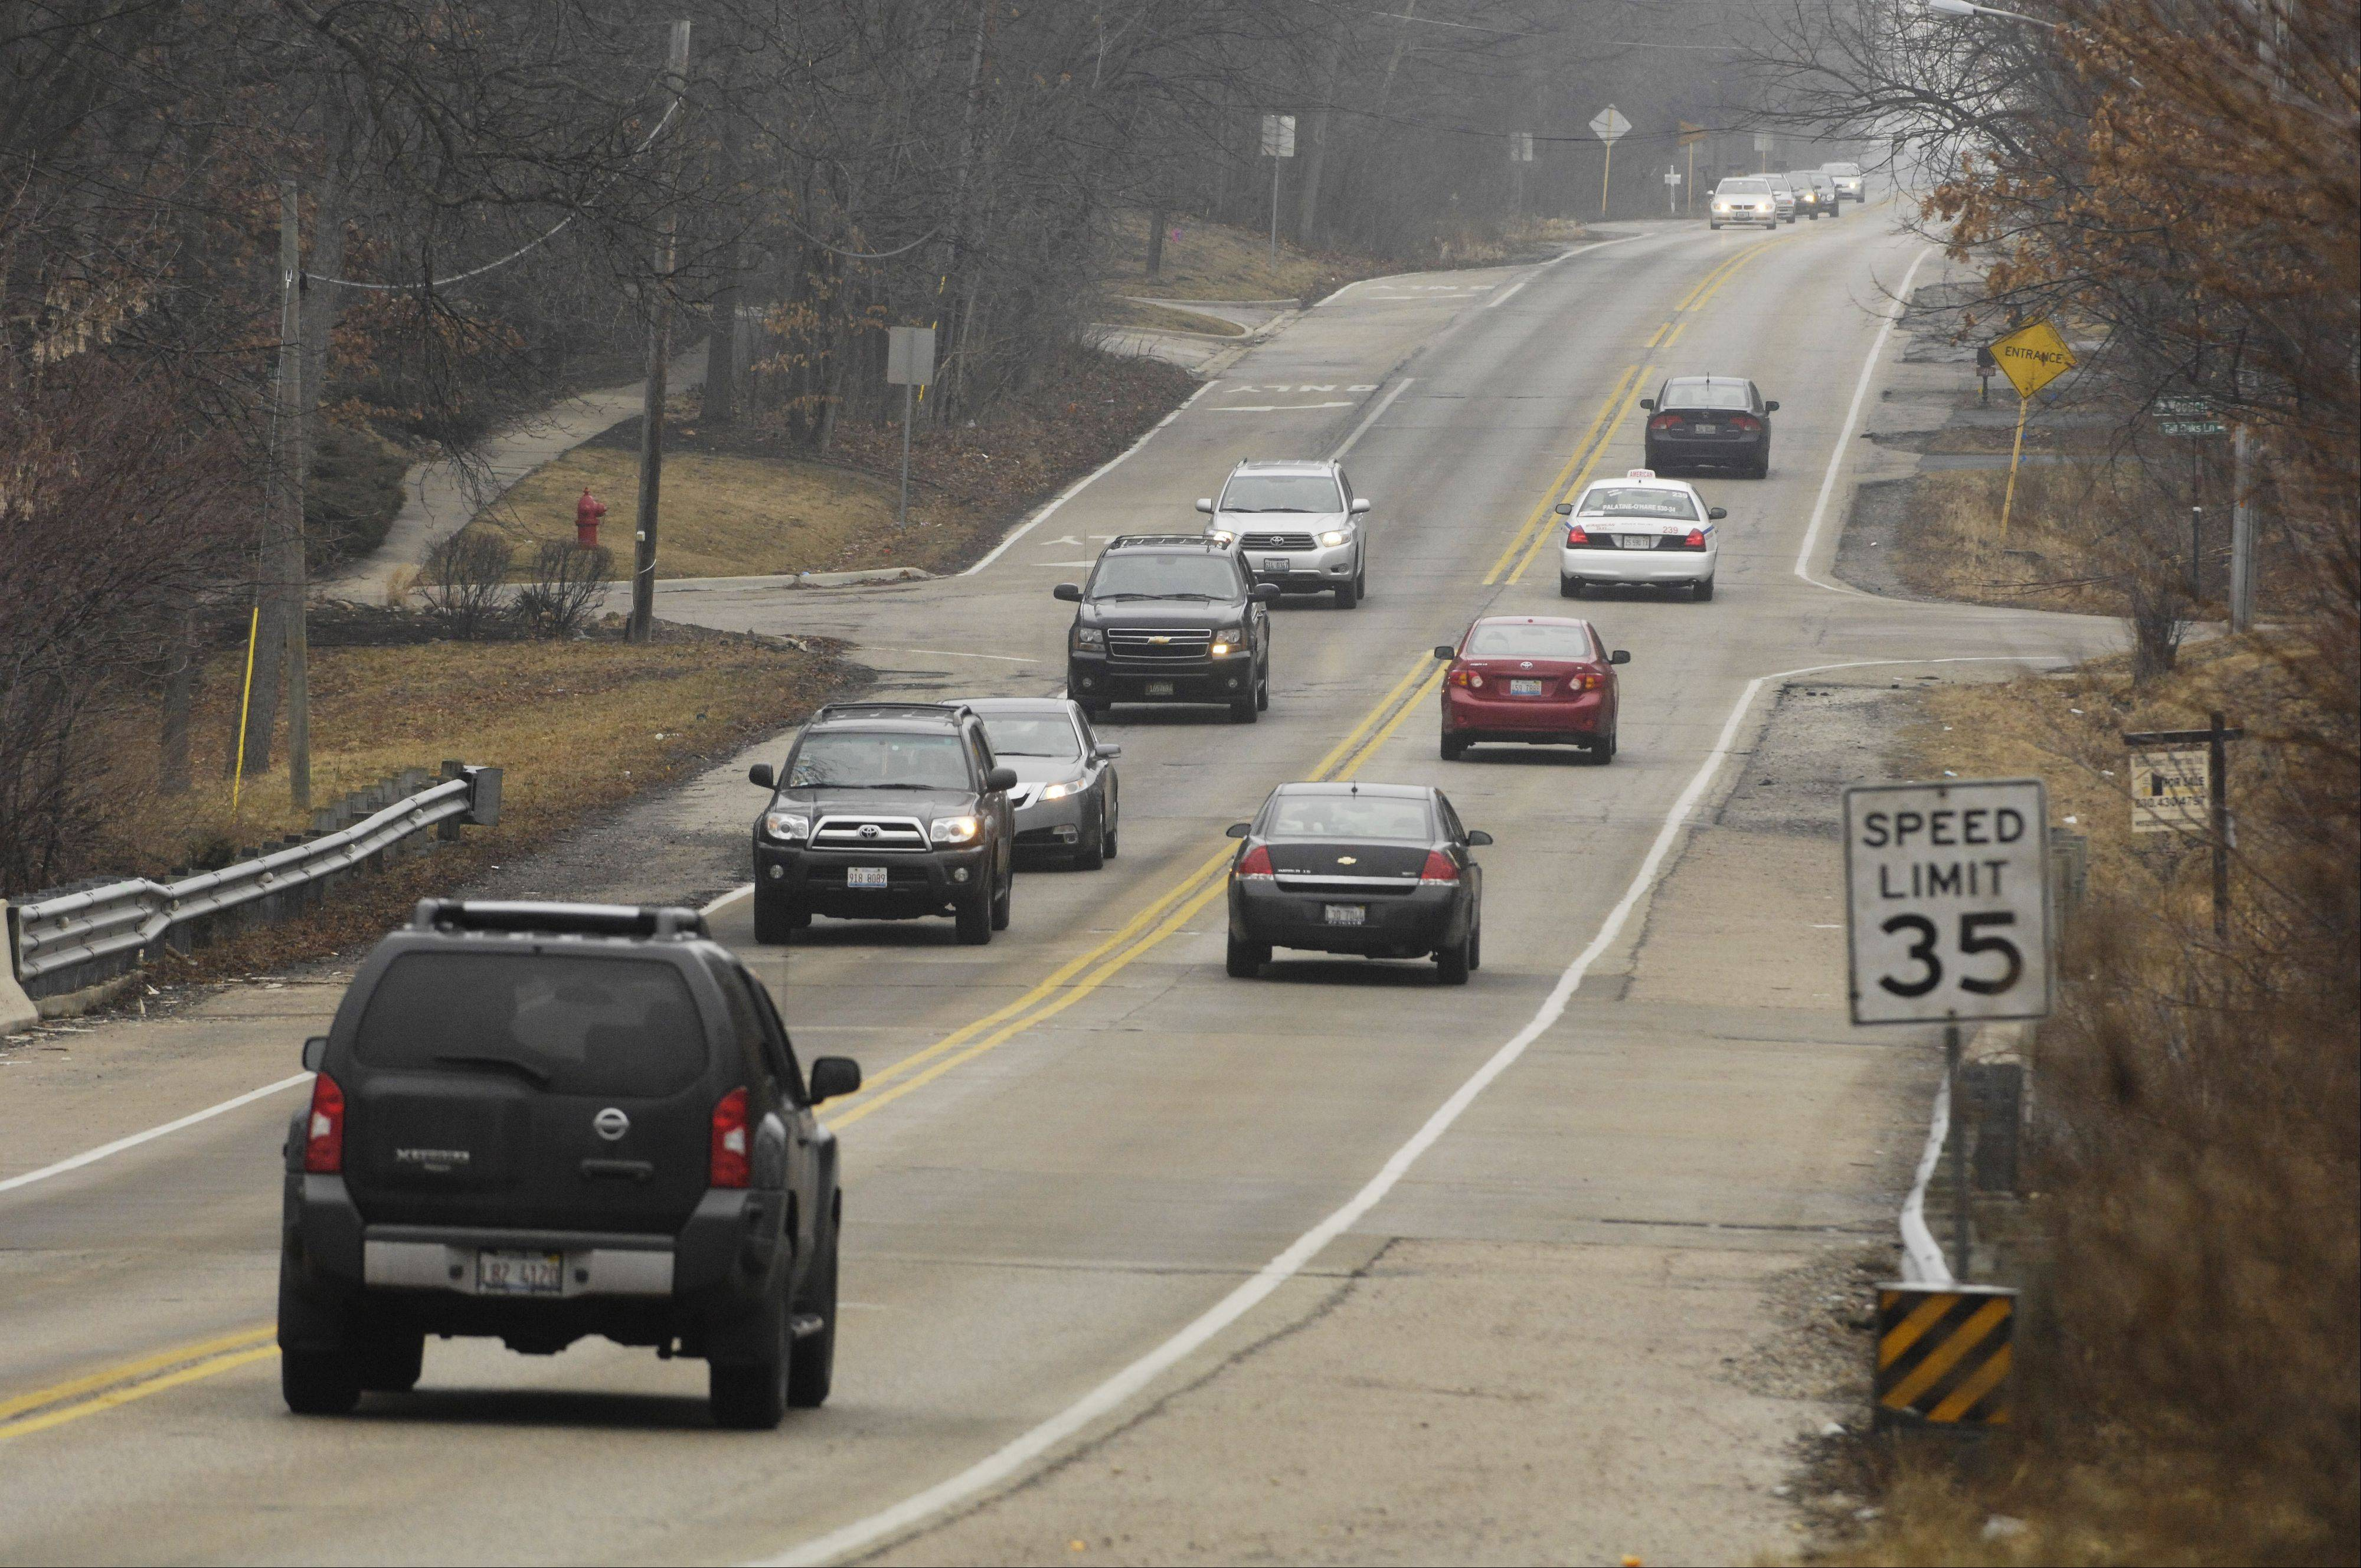 Meacham Road expansion: Two, three or five lanes?